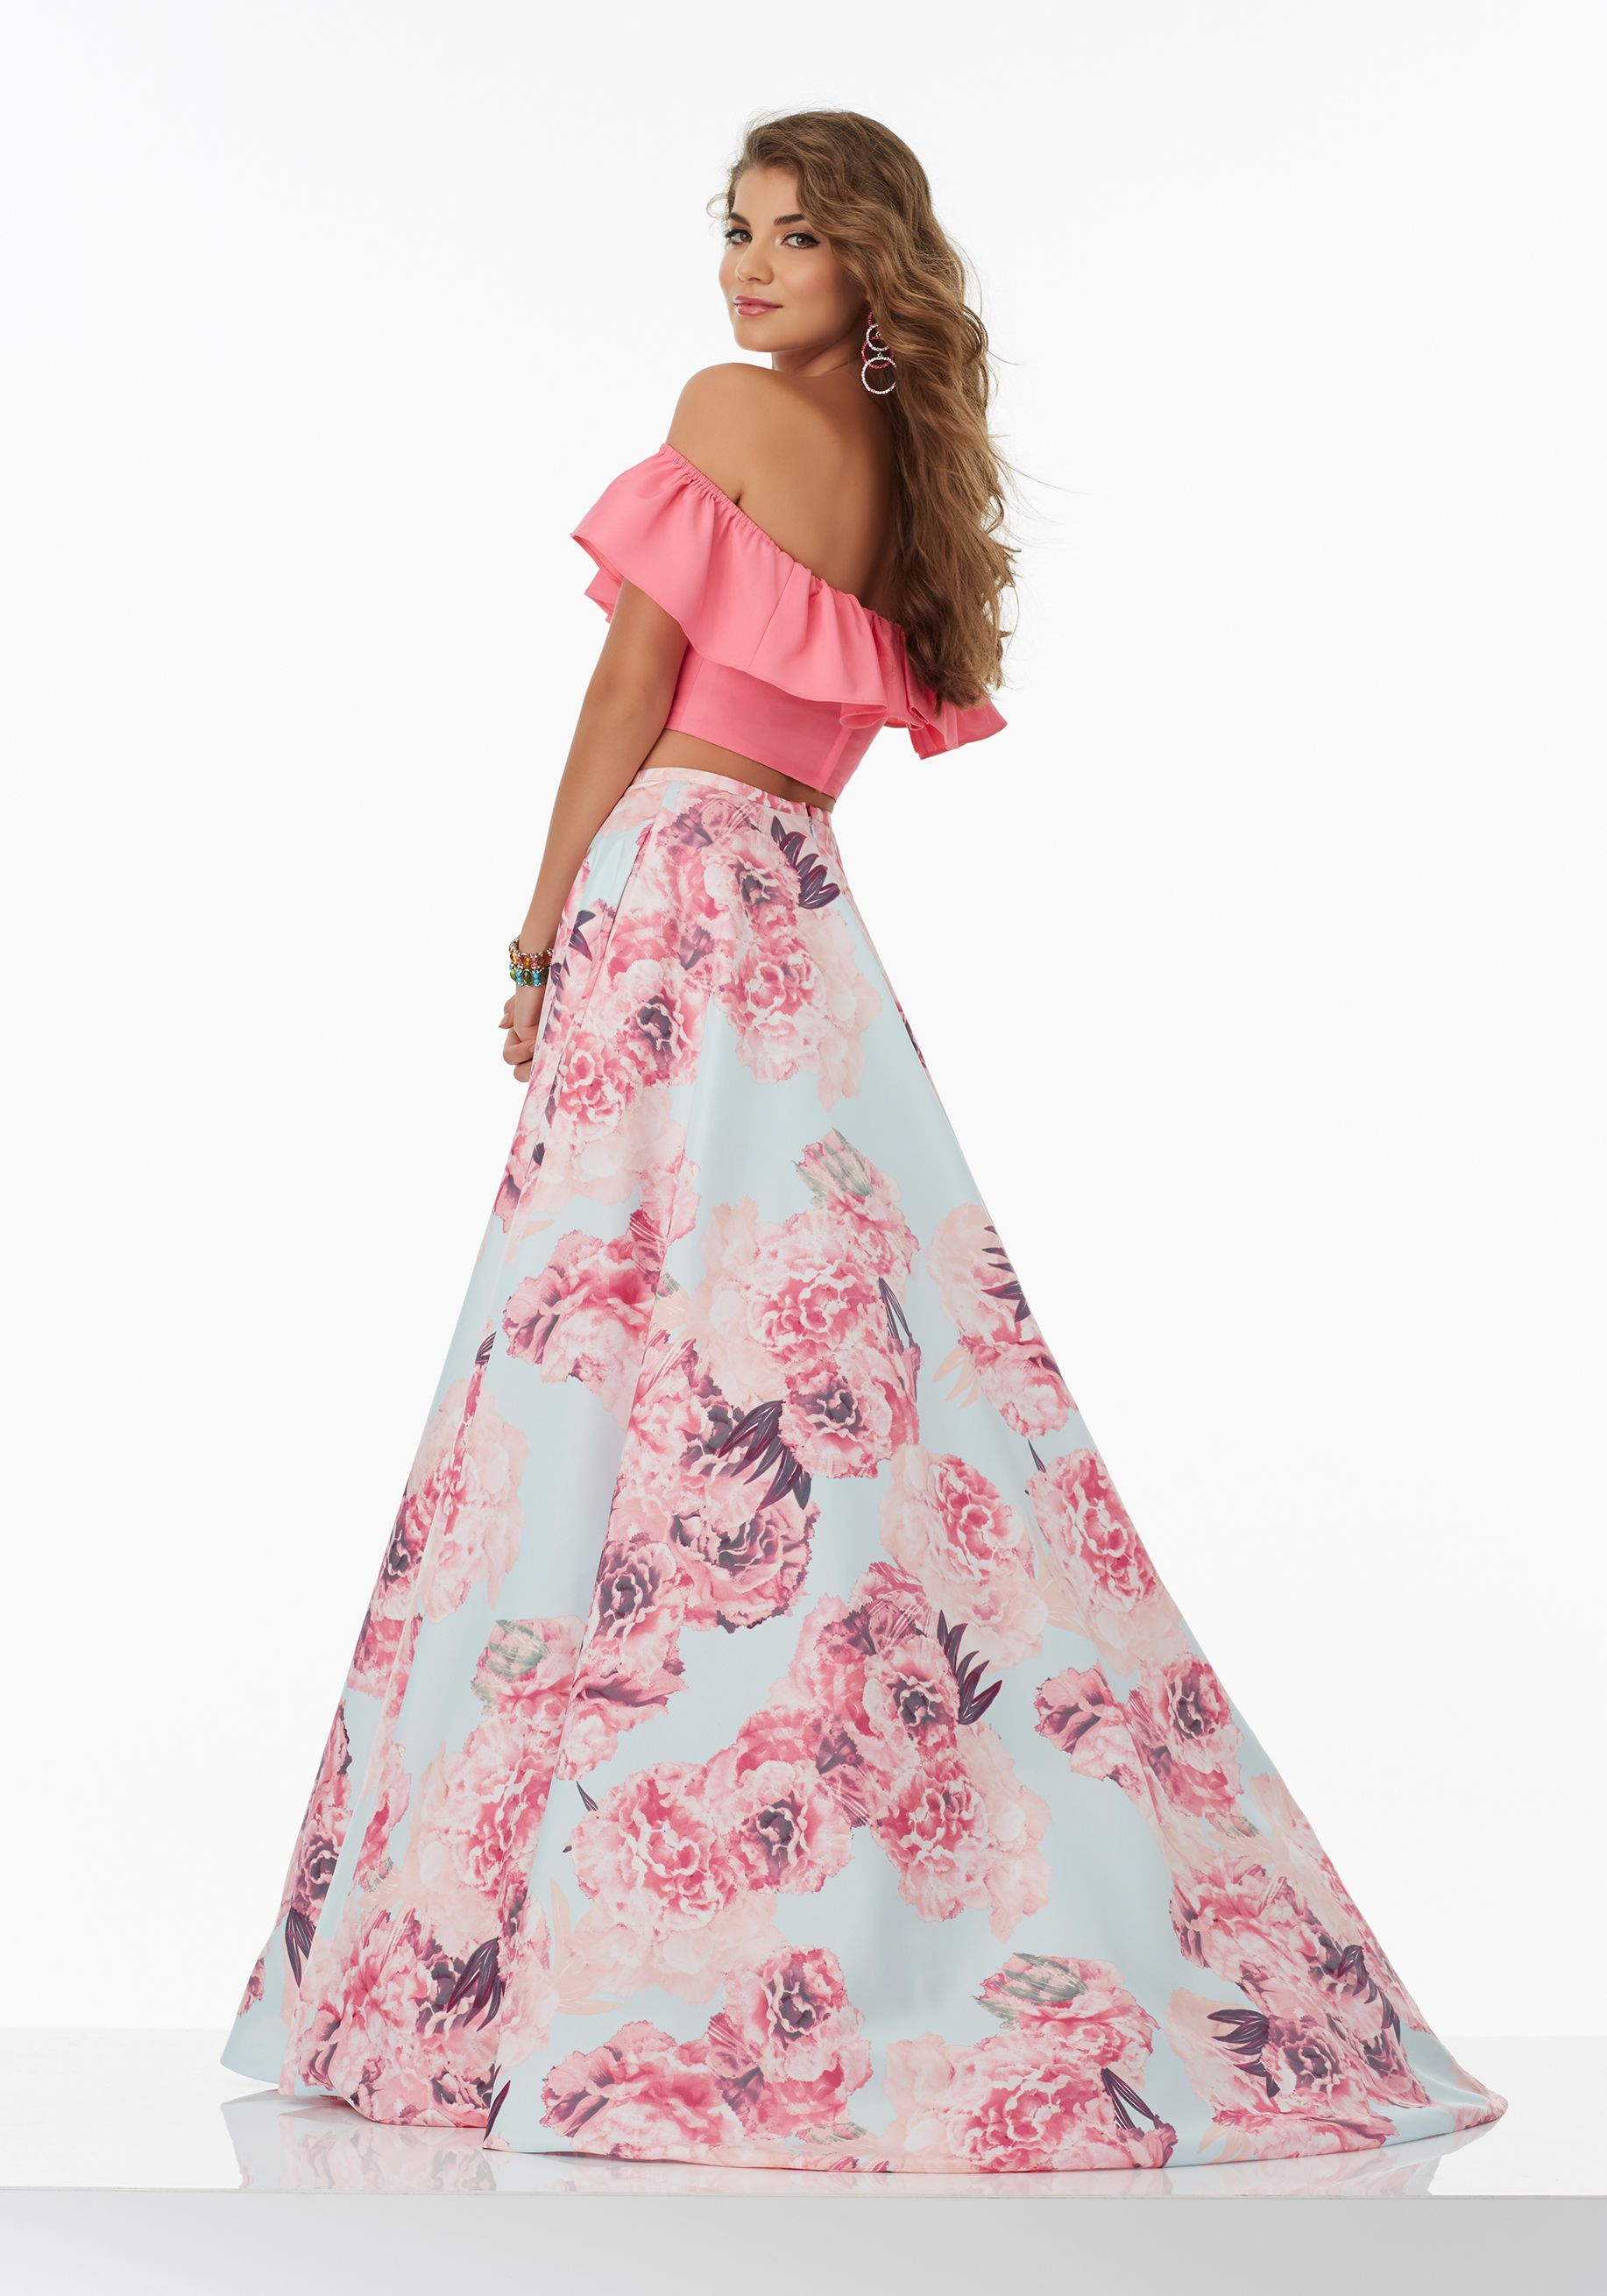 Prom dresses by morilee designed by madeline gardner fun for Mori lee taffeta wedding dress